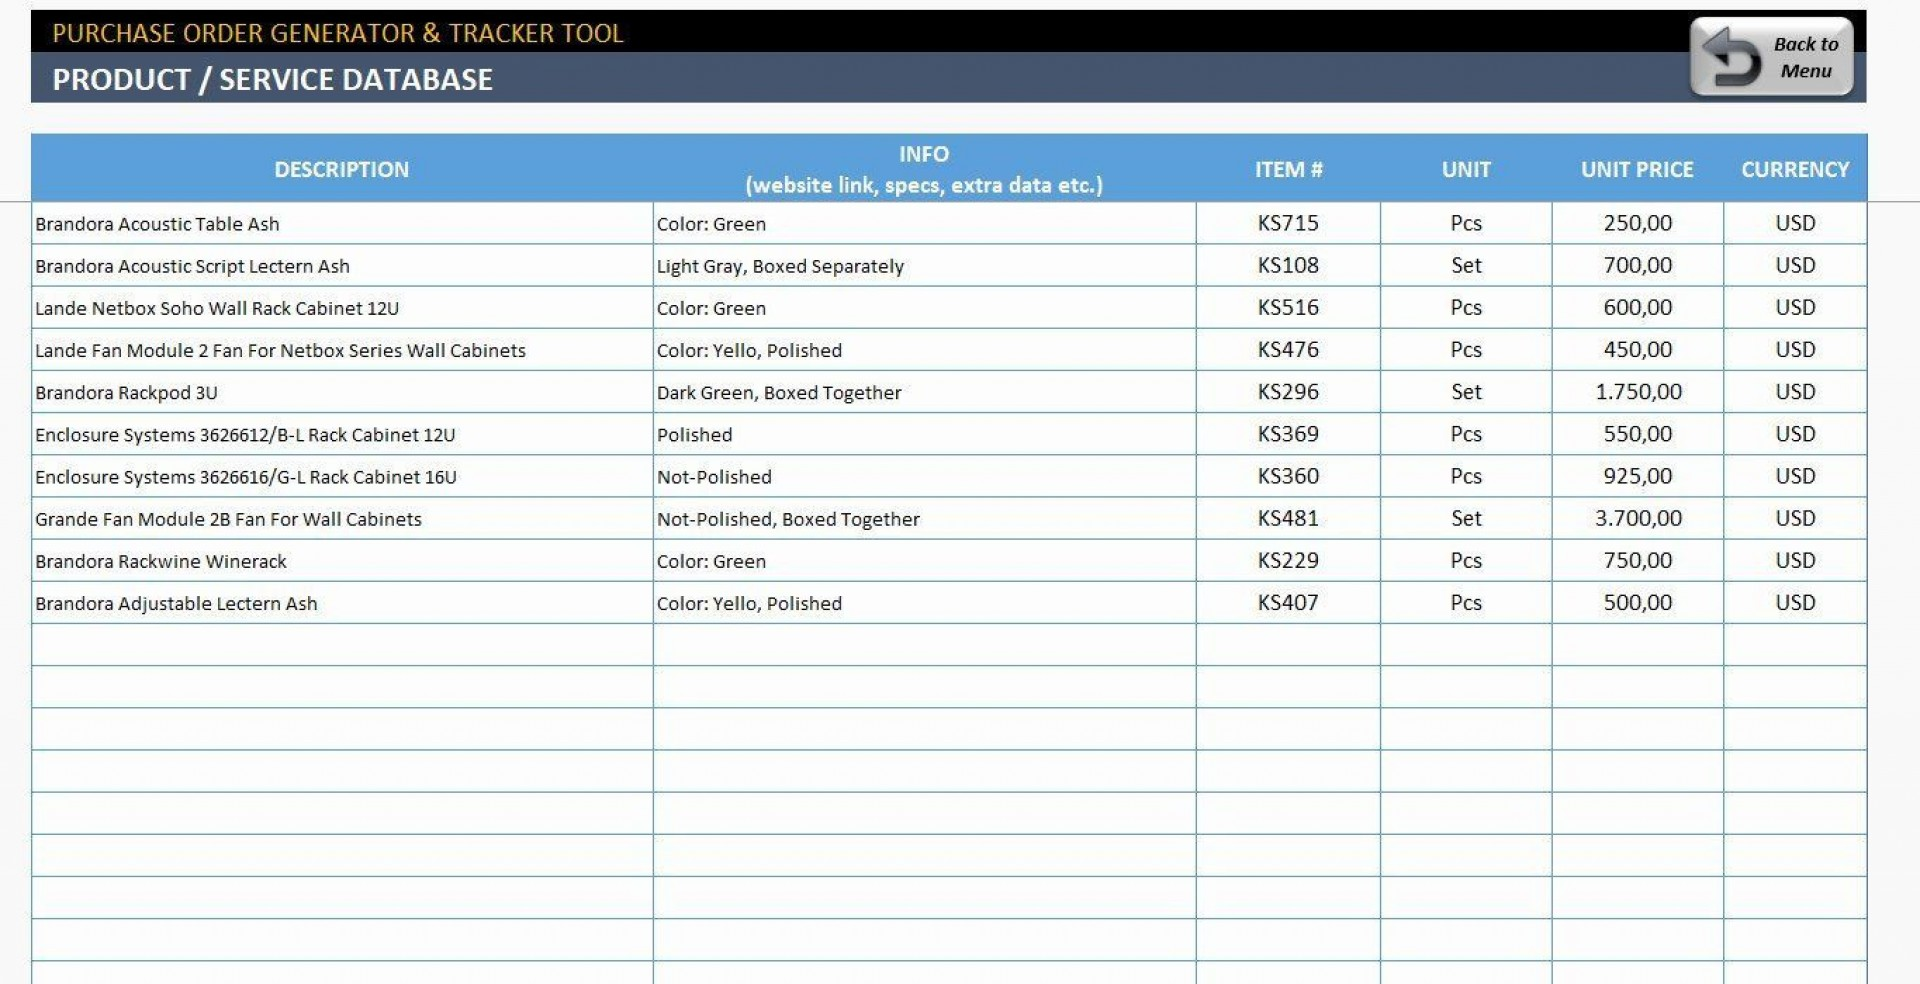 002 Best Excel Work Order Tracking Template Design  Construction Microsoft1920